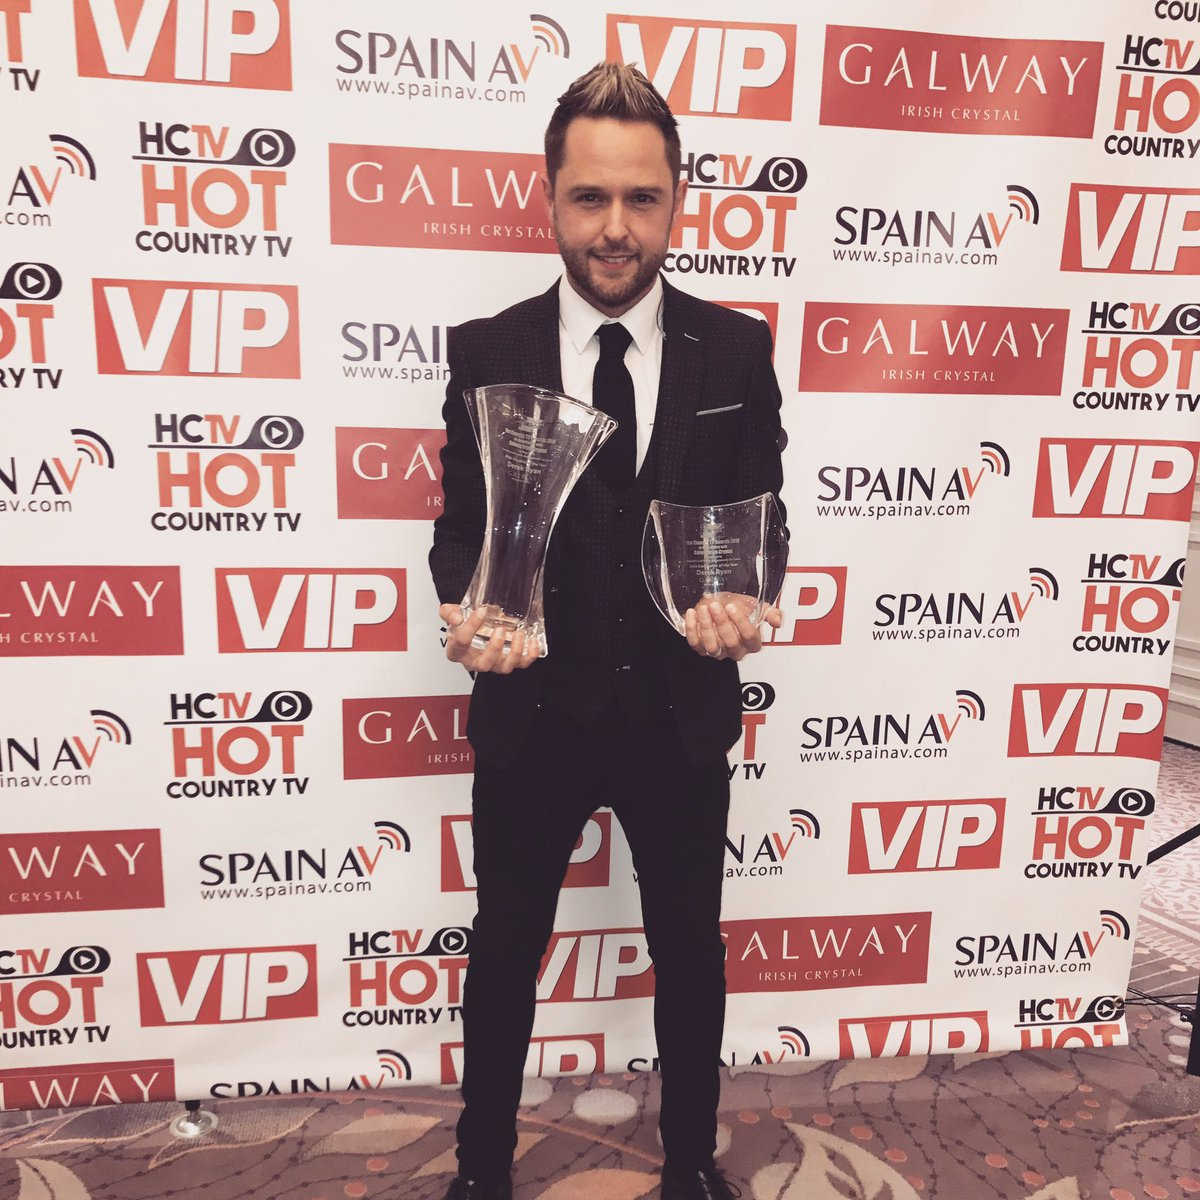 Delighted with my 2 awards at the @HotCountryTV2 TONIGHT. #IrishSongwriterOfTheYear #MaleVocalistOfTheYear <br>http://pic.twitter.com/2rcEDH3YbC